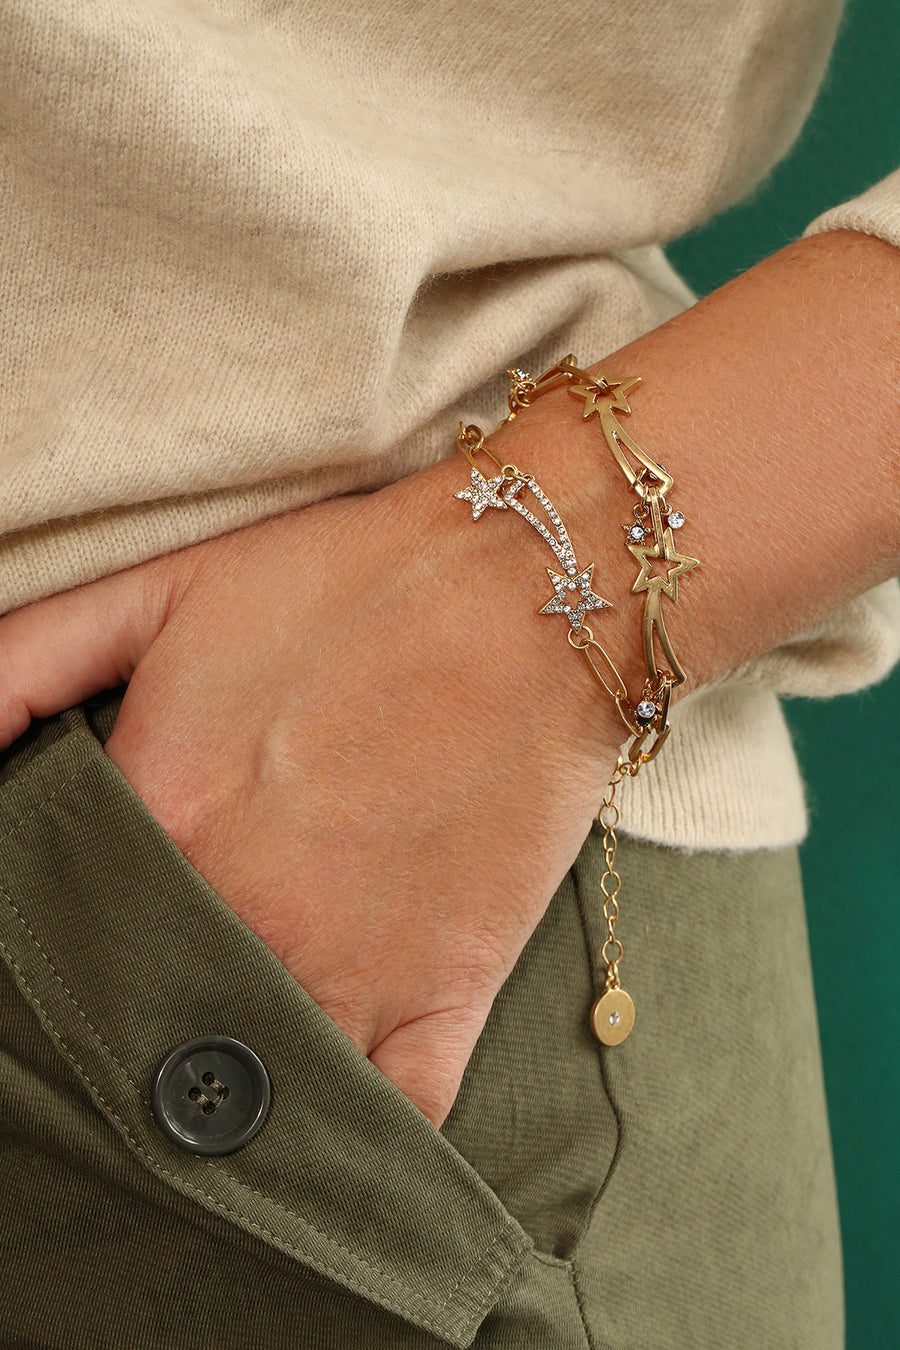 Kate Thornton 'Shooting Stars' Gold Layered Bracelet